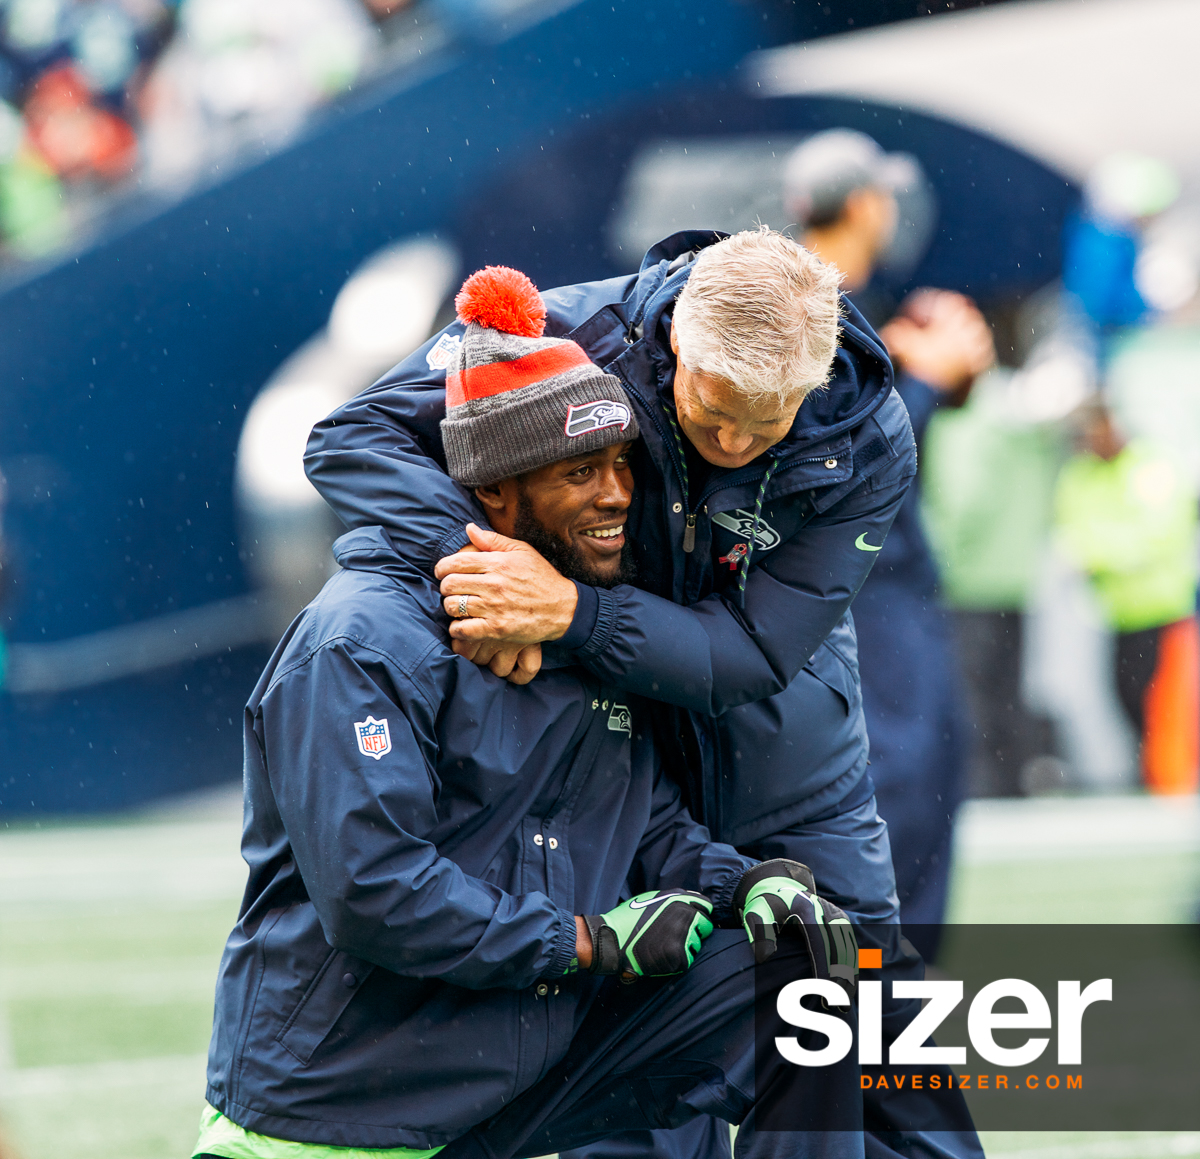 Head Coach Pete Carroll gives a big hug to Kam Chancellor, who had to sit out this game with an injury.